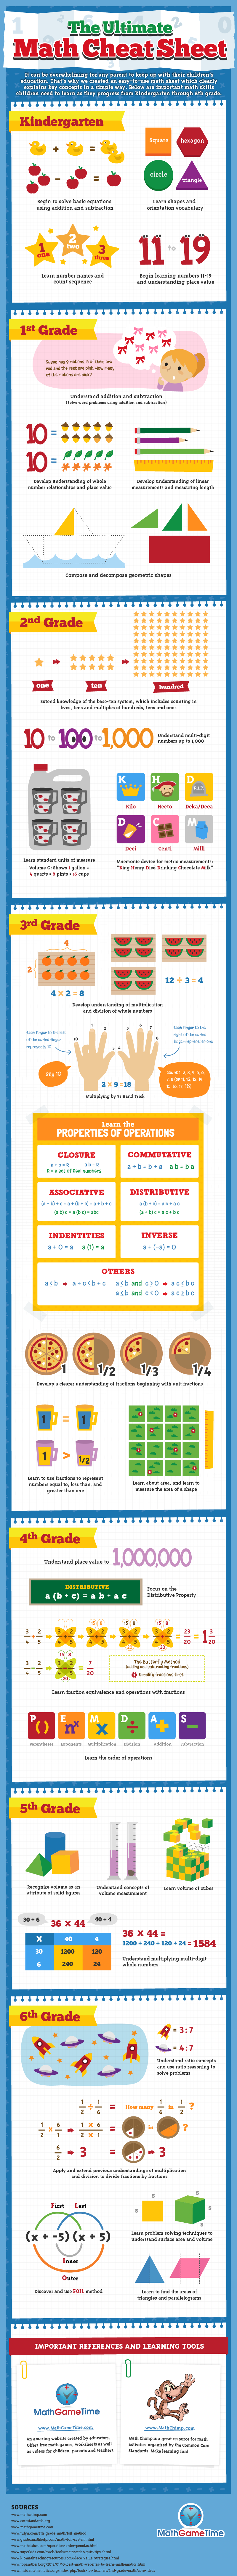 The-Ultimate-Math-Cheat-Sheet-Infographic